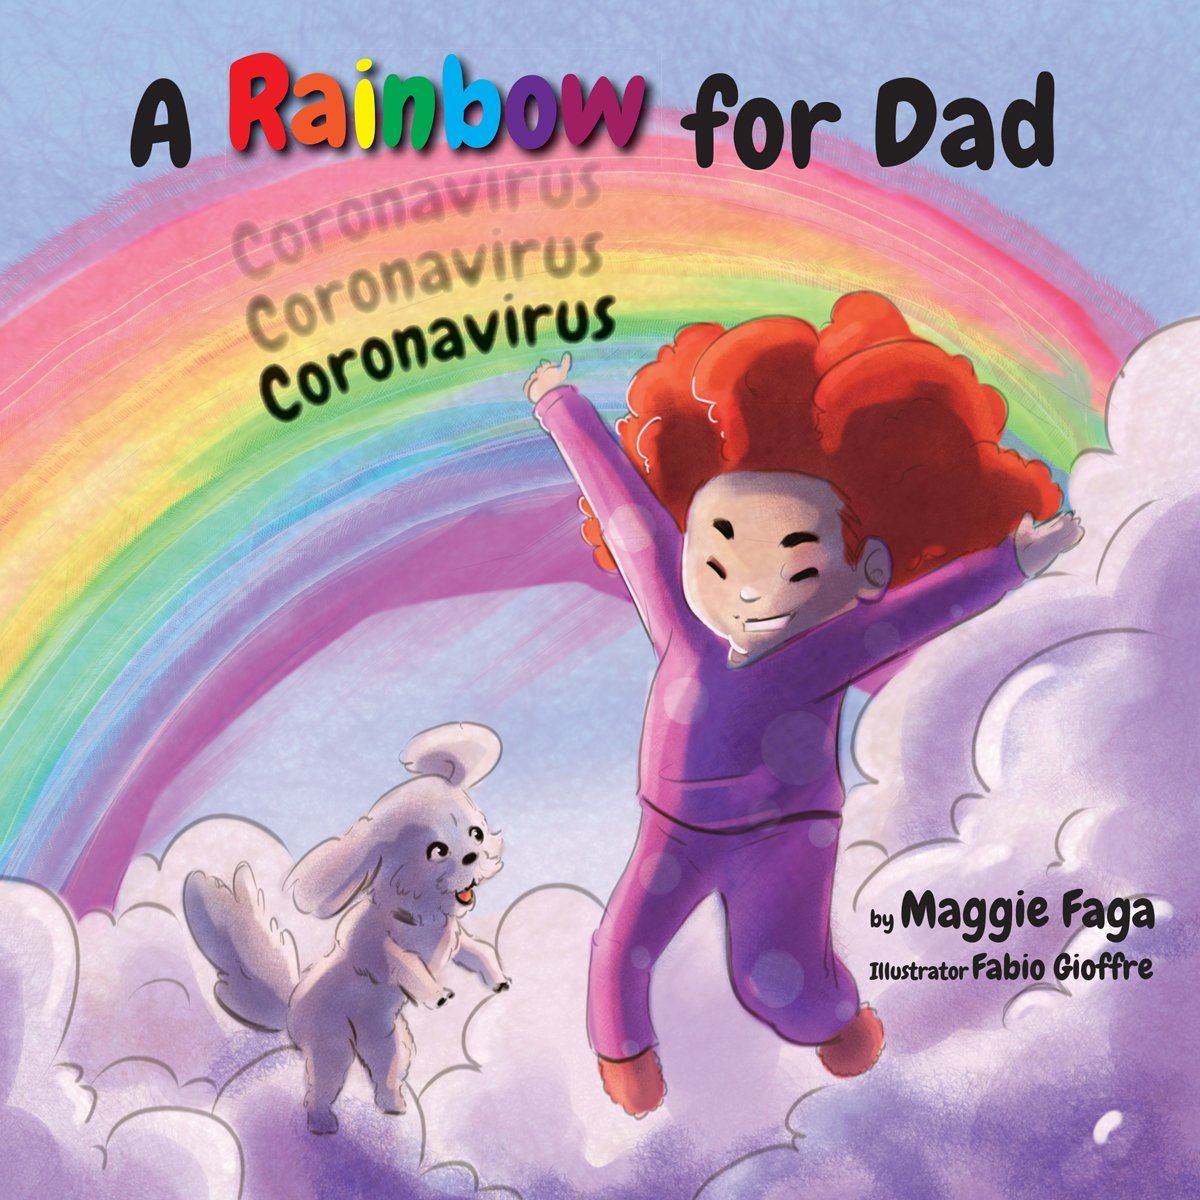 Magi Faga - A Rainbow for Dad